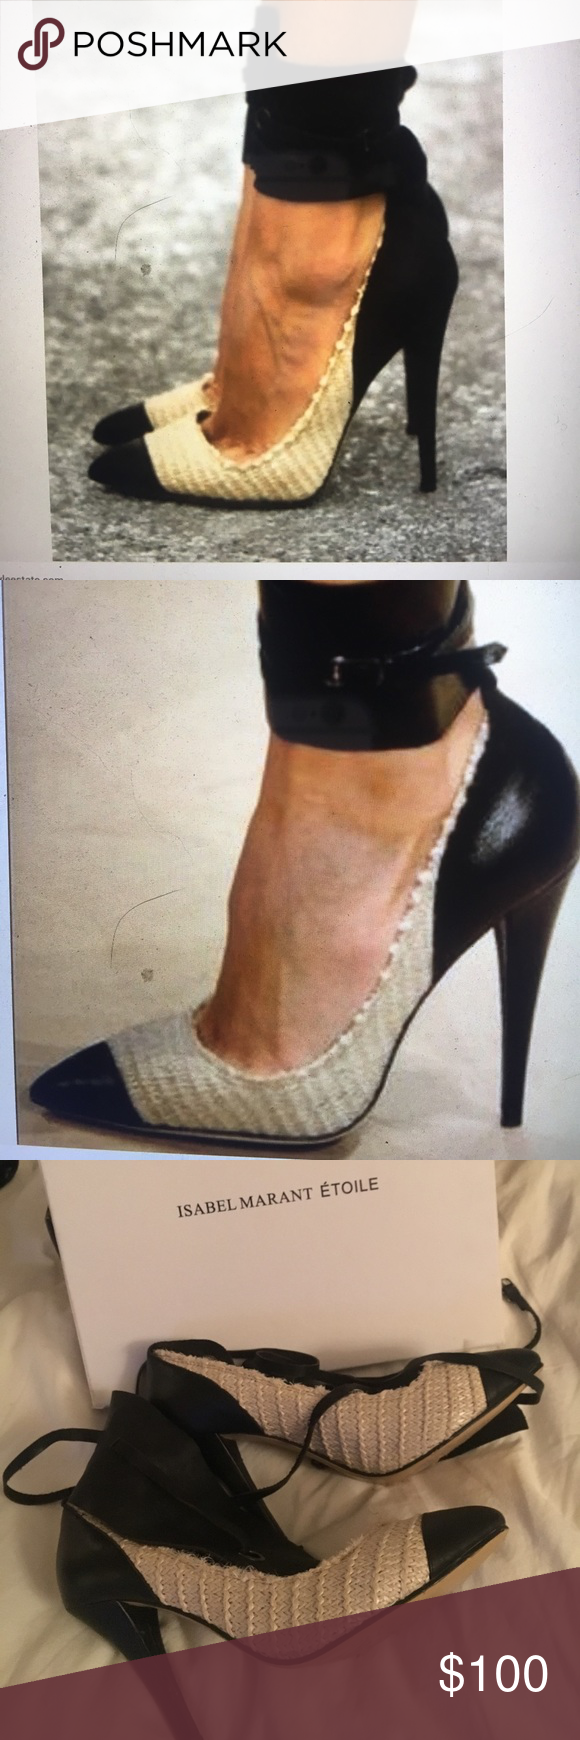 Isabel MARANT LEATHER ANKLE WRAP PUMPS 👩‍🎨 Gorgeous sexy !!! EUROPEAN DESIGNER 👩‍🎨 !! TREND SETTING DESIGNER !! Isabel Marant Shoes Heels